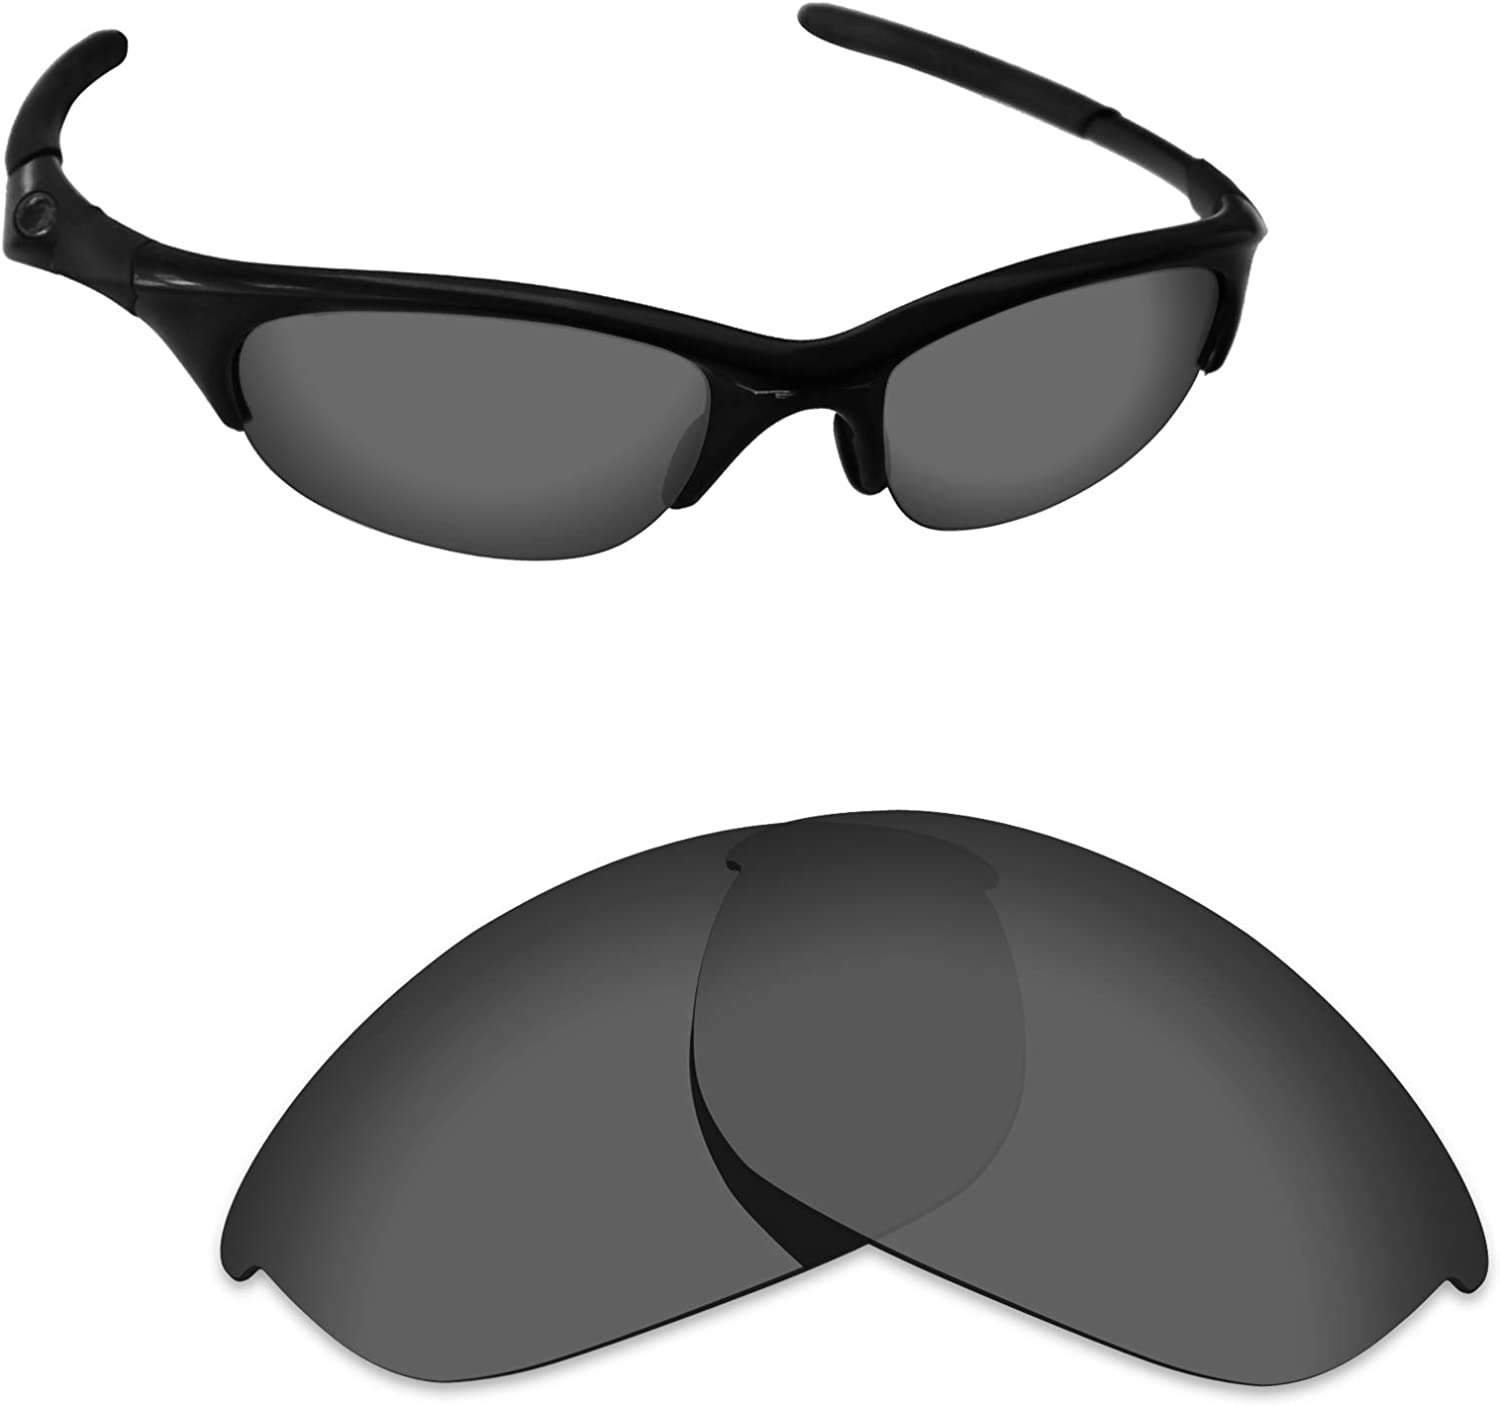 Phoenix Mall Alphax Polarized Replacement Lenses Accessories Free shipping on posting reviews Half Oakley for